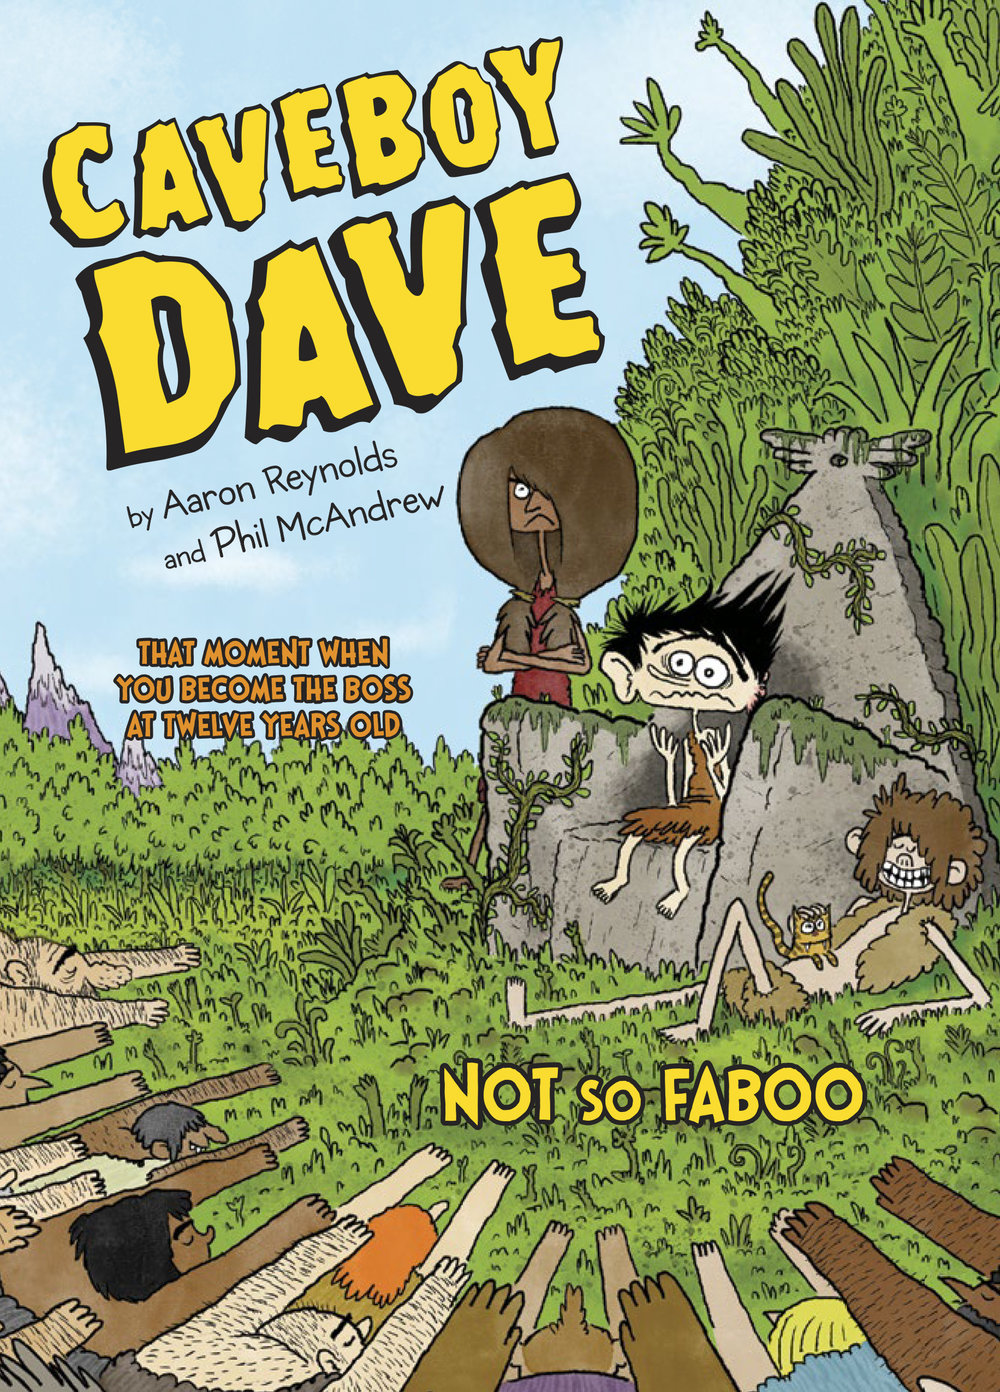 - CAVEBOY DAVE: Not So Faboo(Viking Children's, October 2018) - artistTranslations: subrights@penguinrandomhouse.comNetherlands (De Fontein)Twelve-year-old Dave Unga-Bunga is having a great year: he survived his deadly Baby-Go-Boom ceremony, he's earned the respect of the villagers of Bleccchh, and he just invented ice cream and summer vacation. Before the ice cream melts, Dave and his friends spot a plume of smoke on the horizon (could there be others nearby?) and suddenly Shaman Faboo--the glue that holds the community together--goes missing. With no one to tell them what to do or how to think, the village panics and elects Dave as their new leader. If Dave can't find Shaman Faboo and bring him back, he'll be doomed to a life of boredom and something much worse: public service!